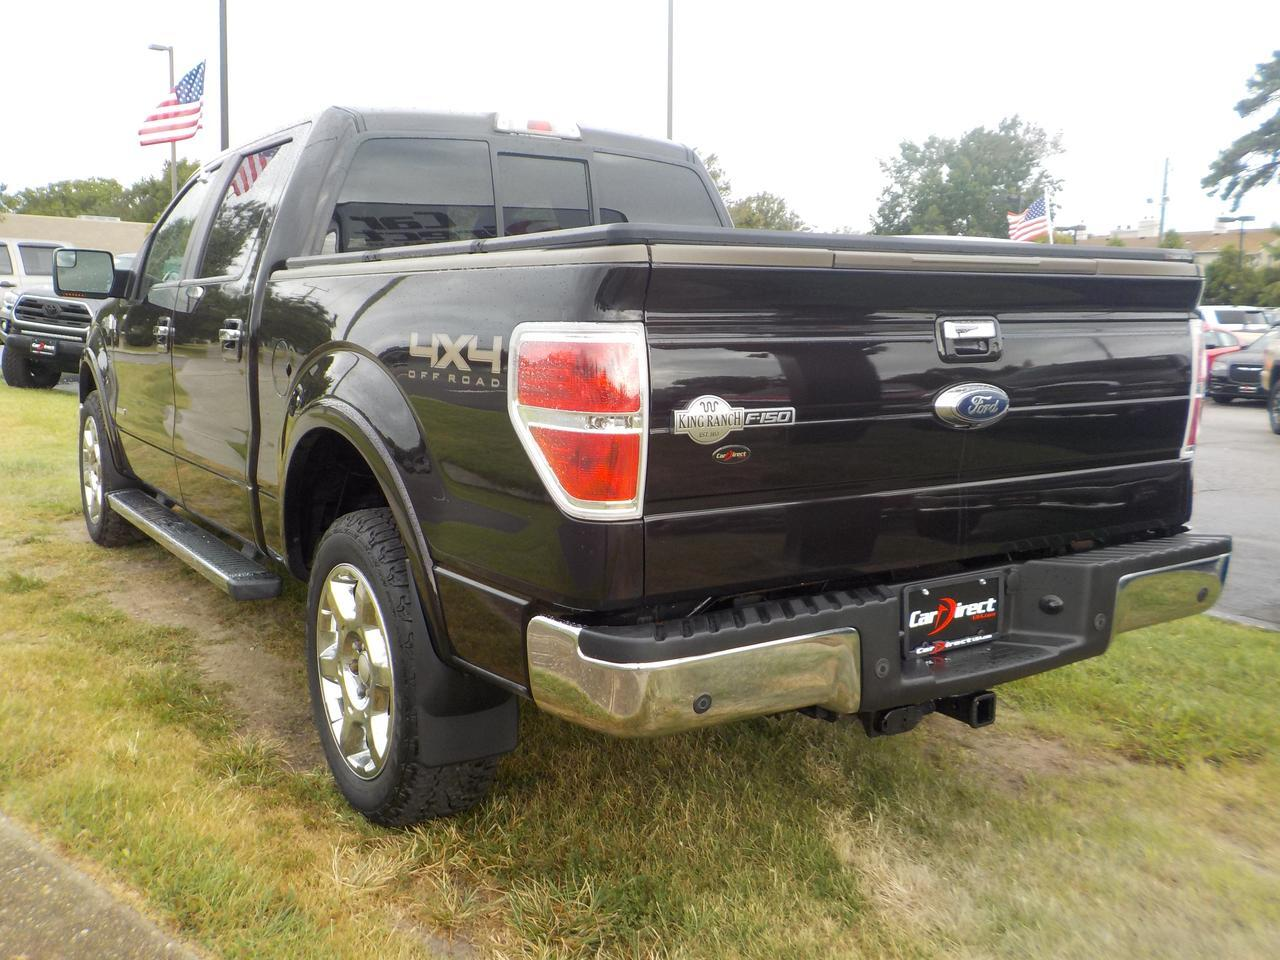 2014 FORD F-150 KING RANCH SUPERCREW, LEATHER, SUNROOF, HEATED/COOLED SEATS, NAV, TOW PKG, 1 OWNER! Virginia Beach VA